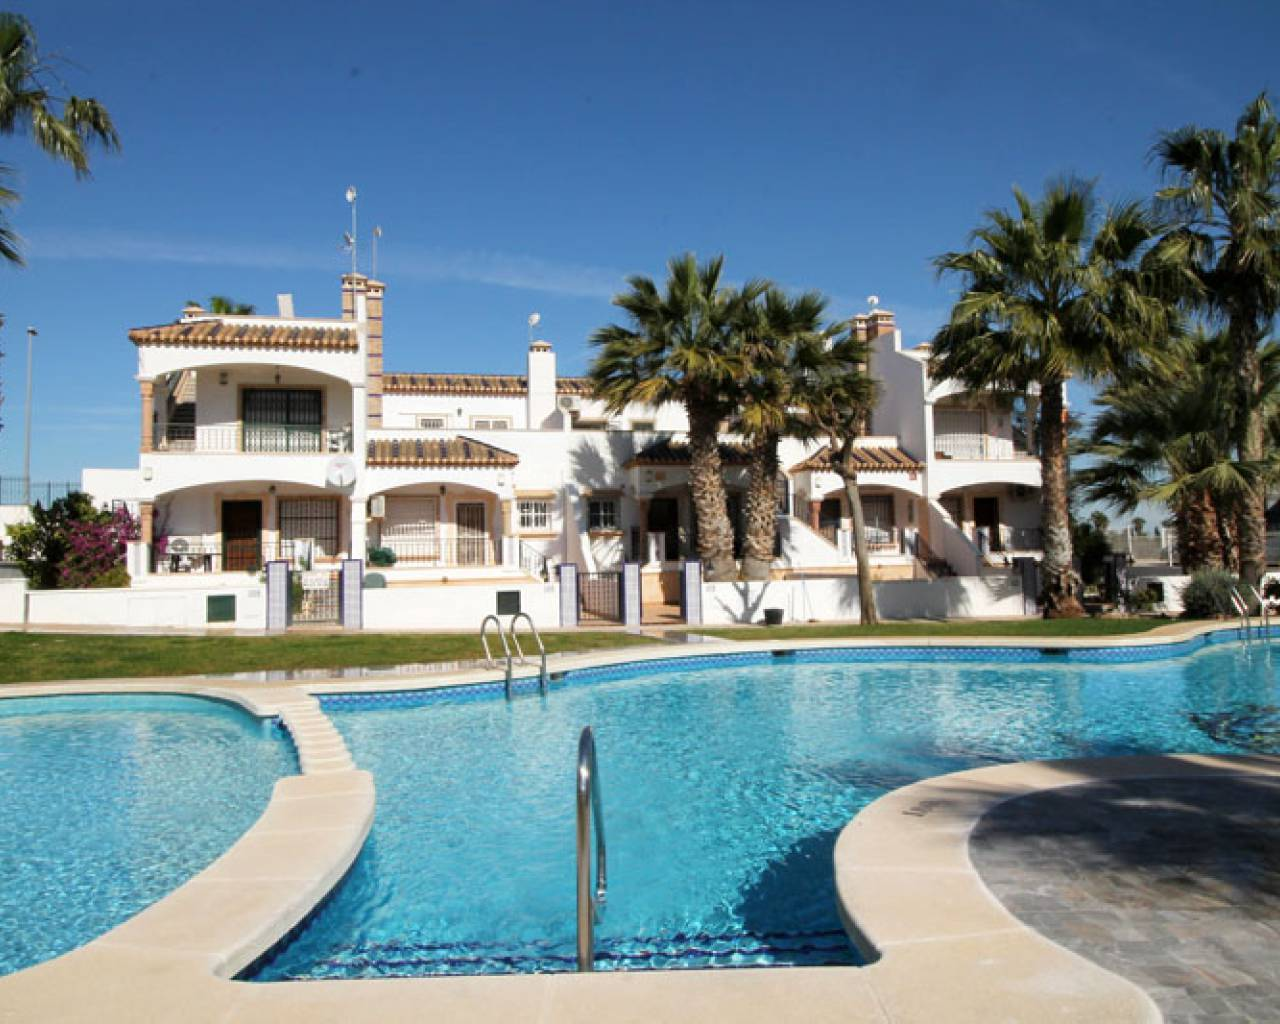 Townhouse / Duplex - Holiday rental - Orihuela Costa - Villamartin Golf